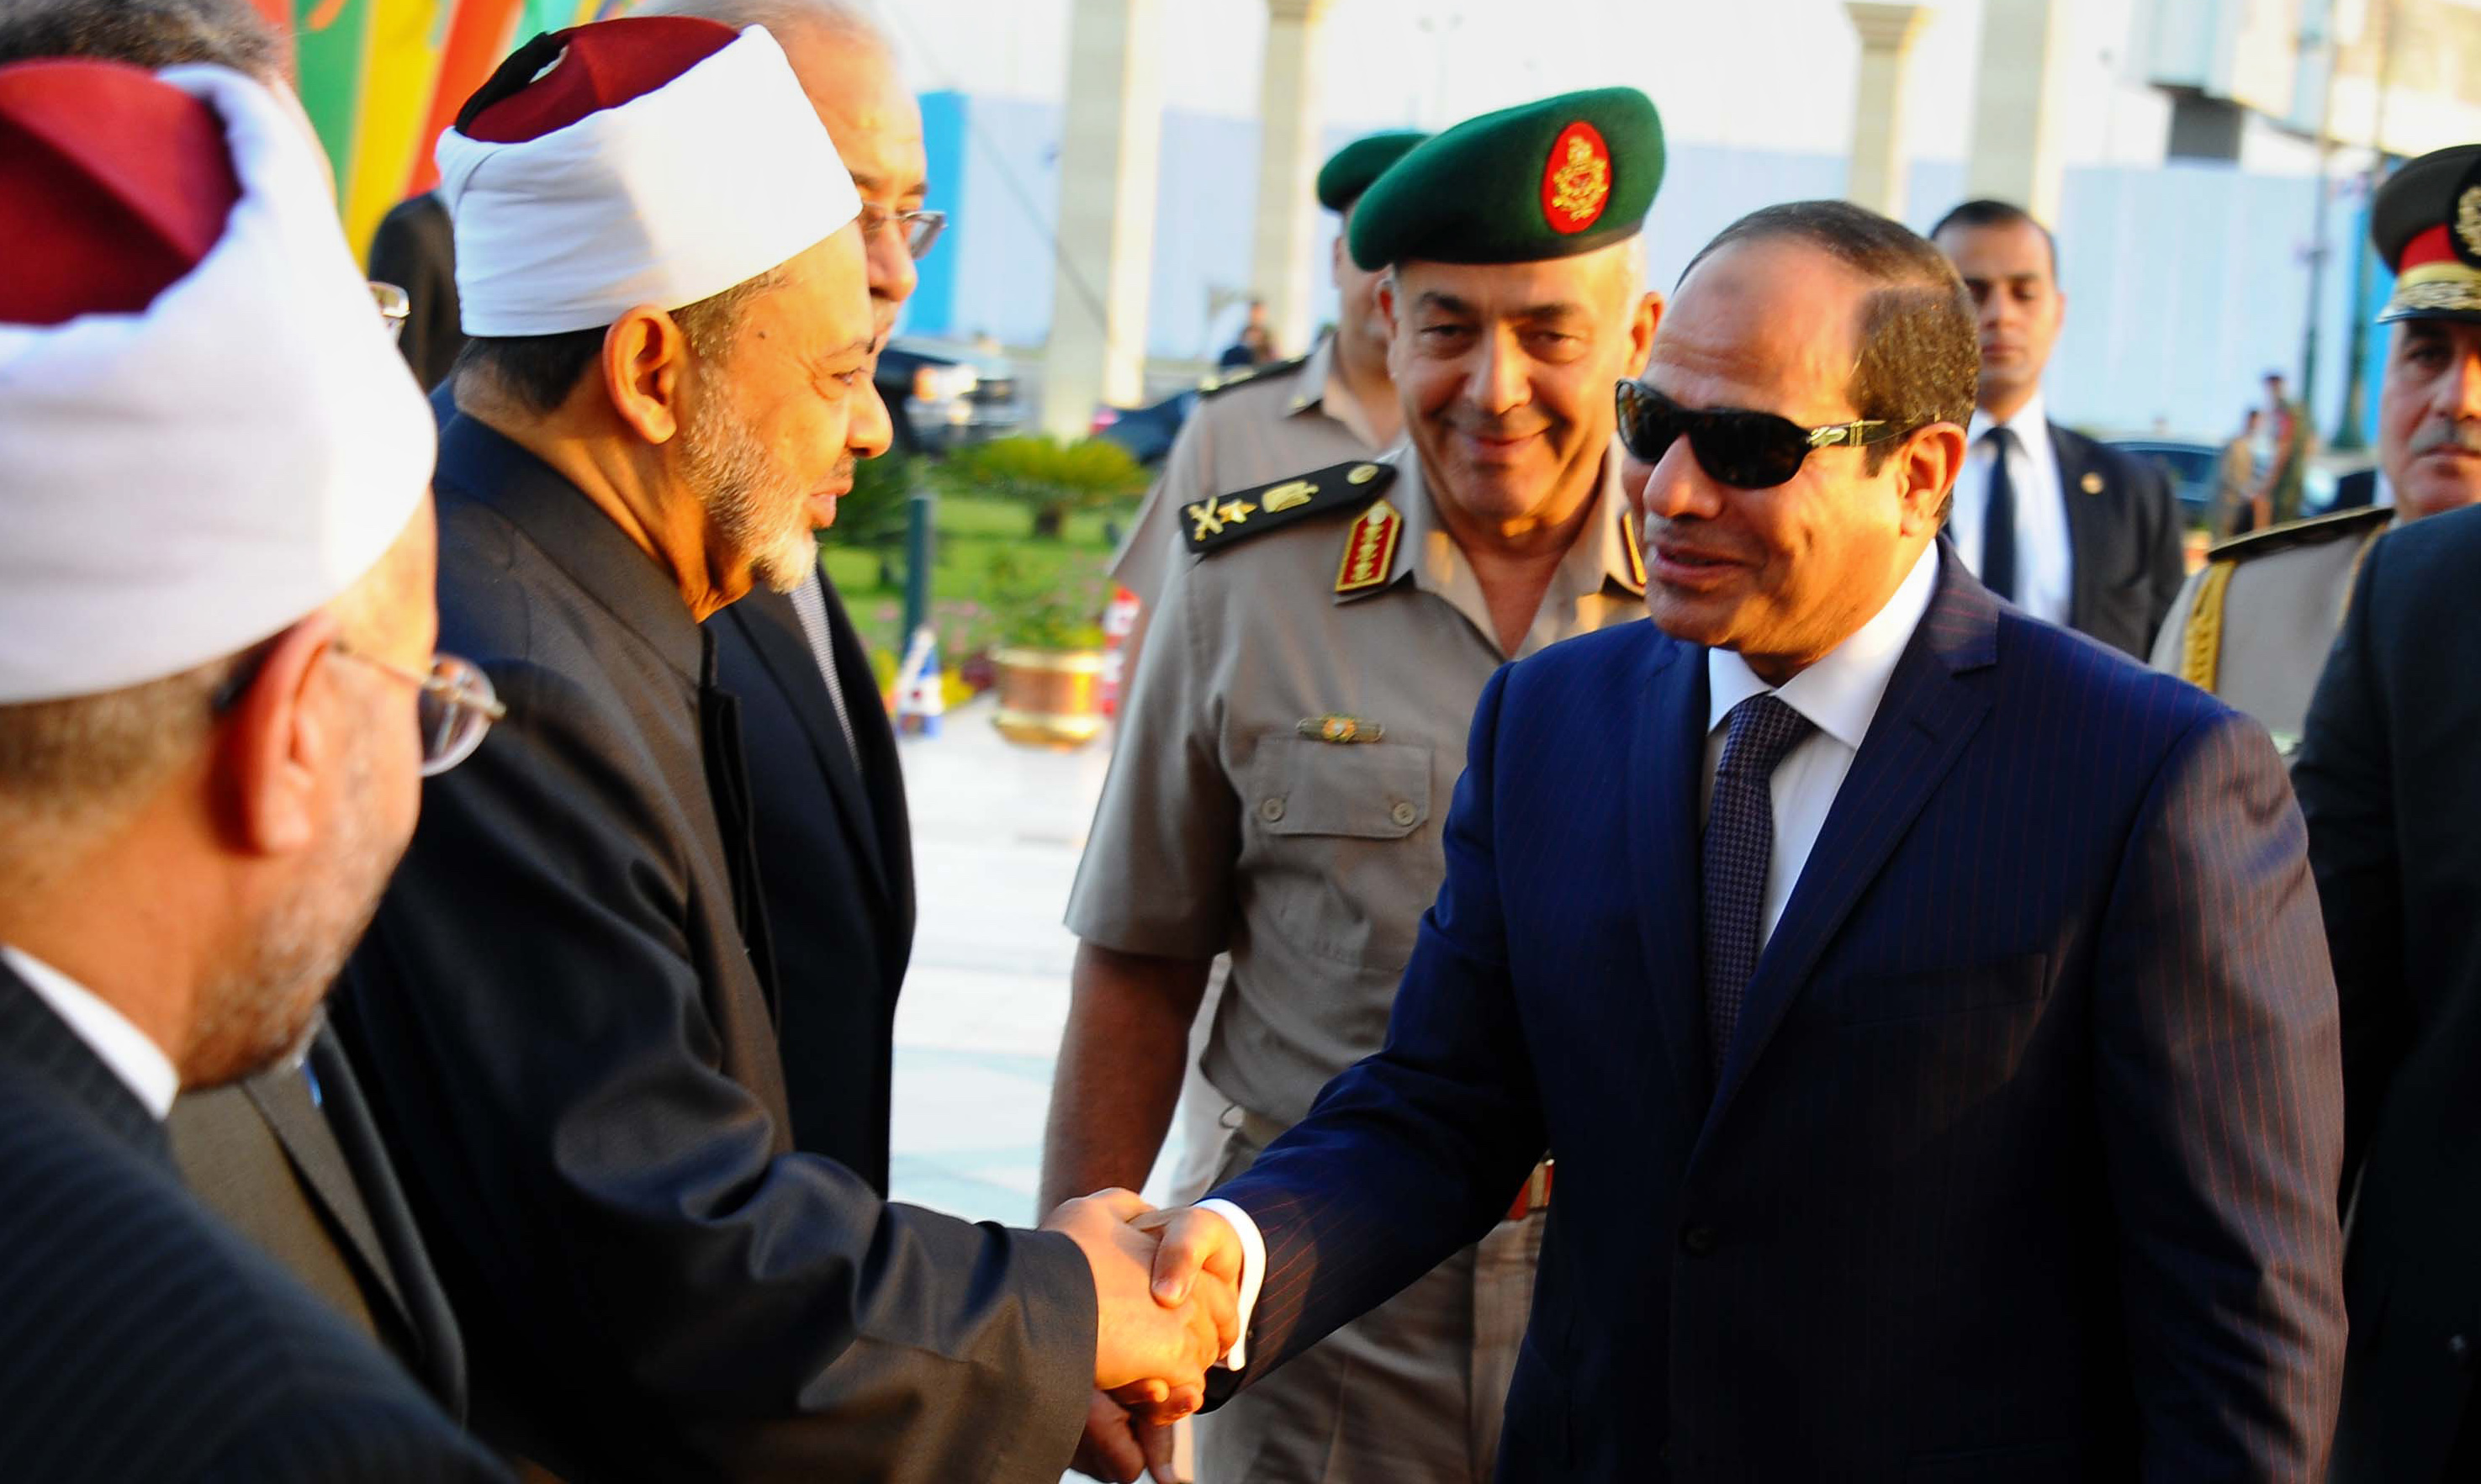 Al-Azhar and Sisi's Regime: Cooperation and Conflict, Al-Azhar and Sisi's Regime: Cooperation and Conflict